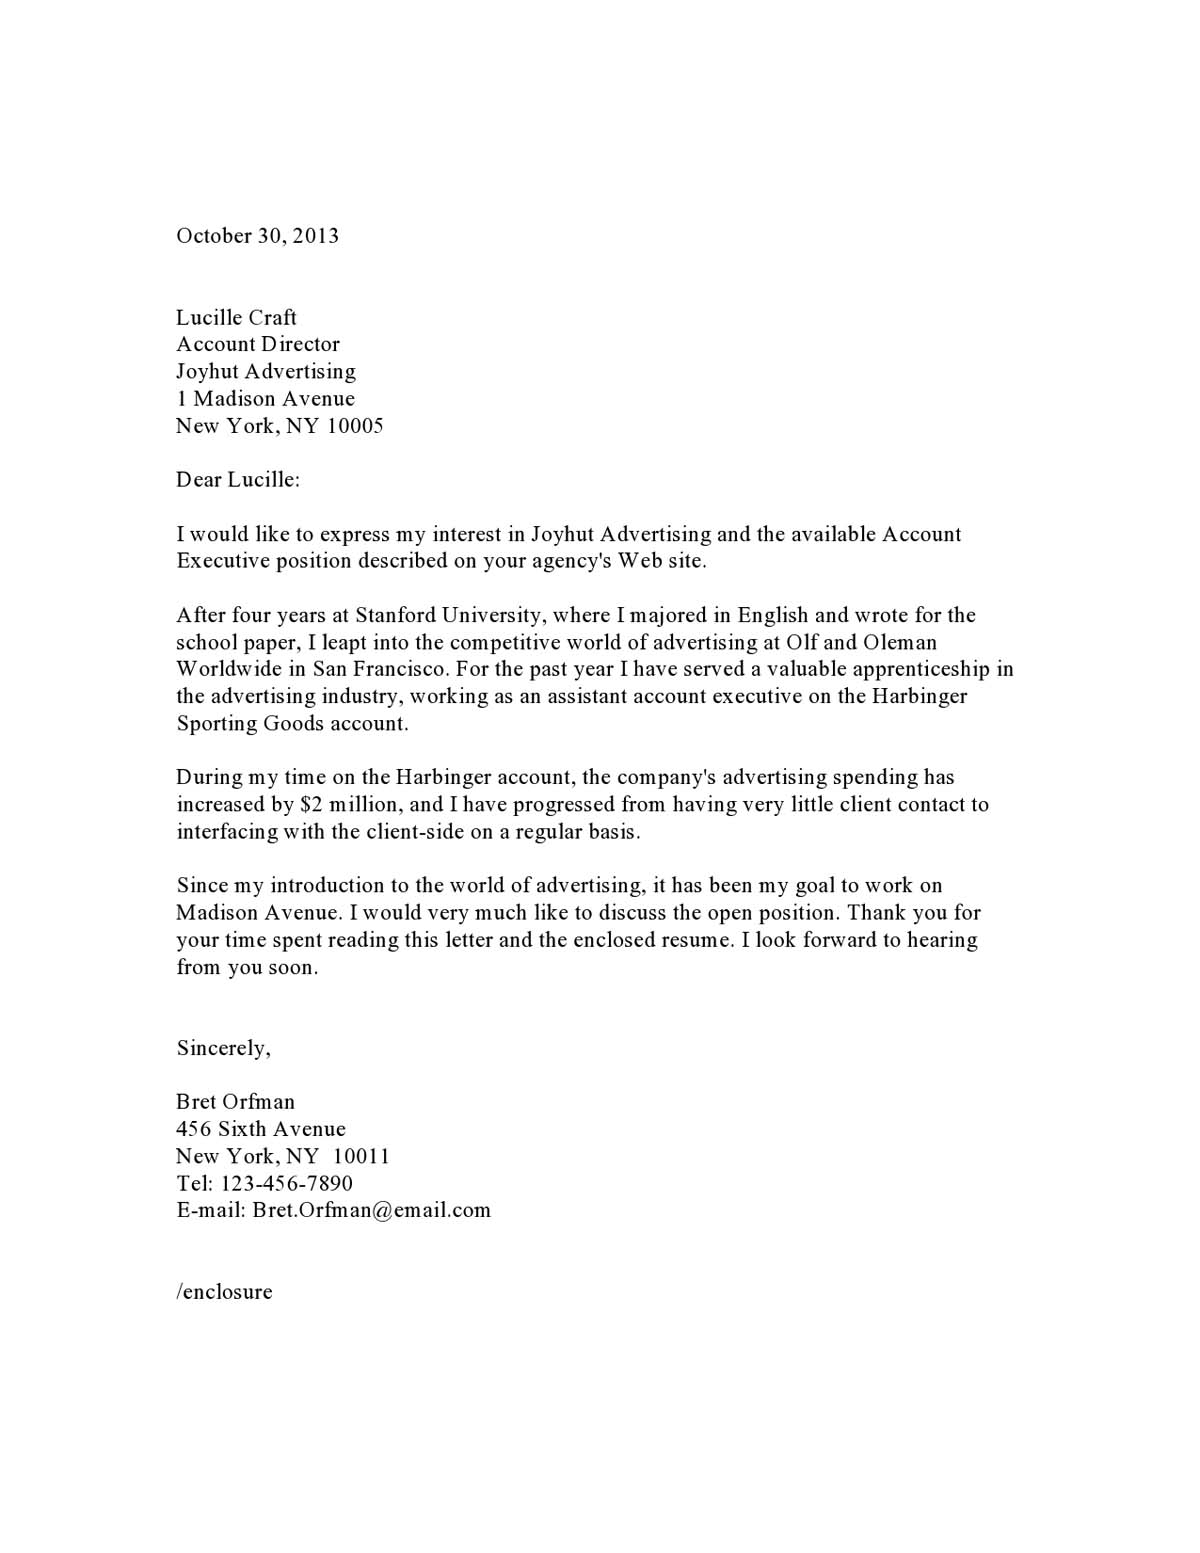 10 resume cover letter examples pdf for Mailing a resume and cover letter